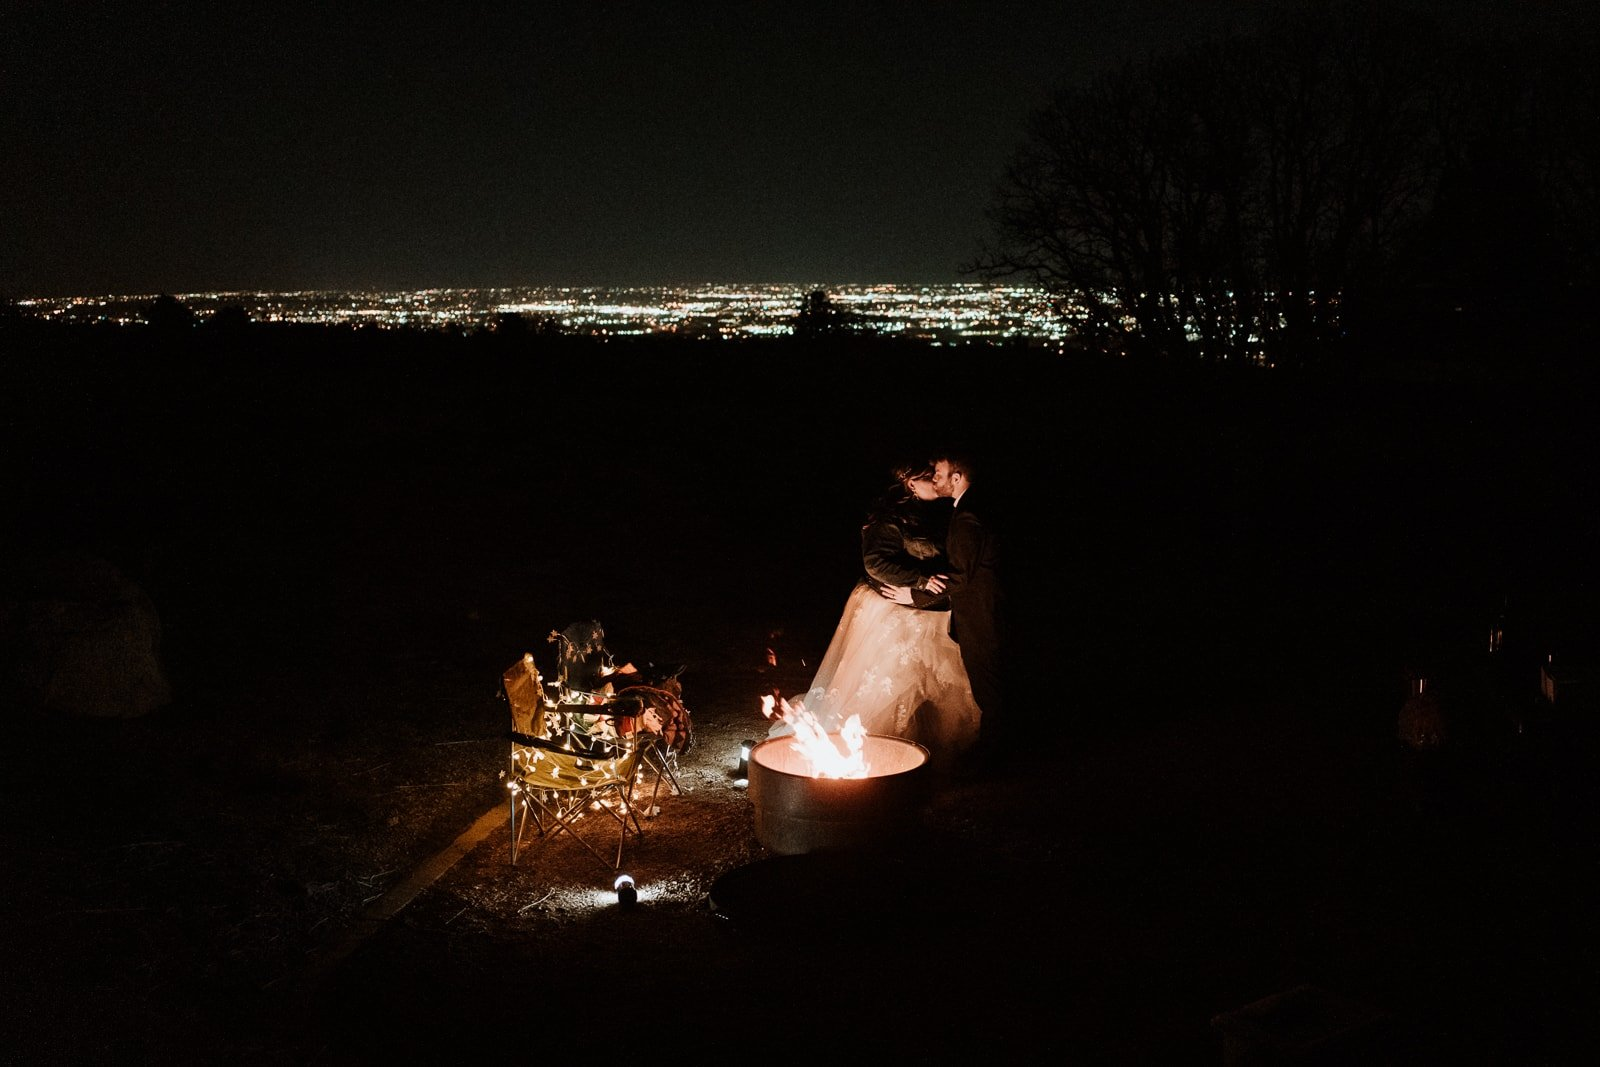 Bride and groom hold each other and kiss next to the campfire at Cheyenne Mountain State Park with the city lights of Colorado Springs lighting up behind them